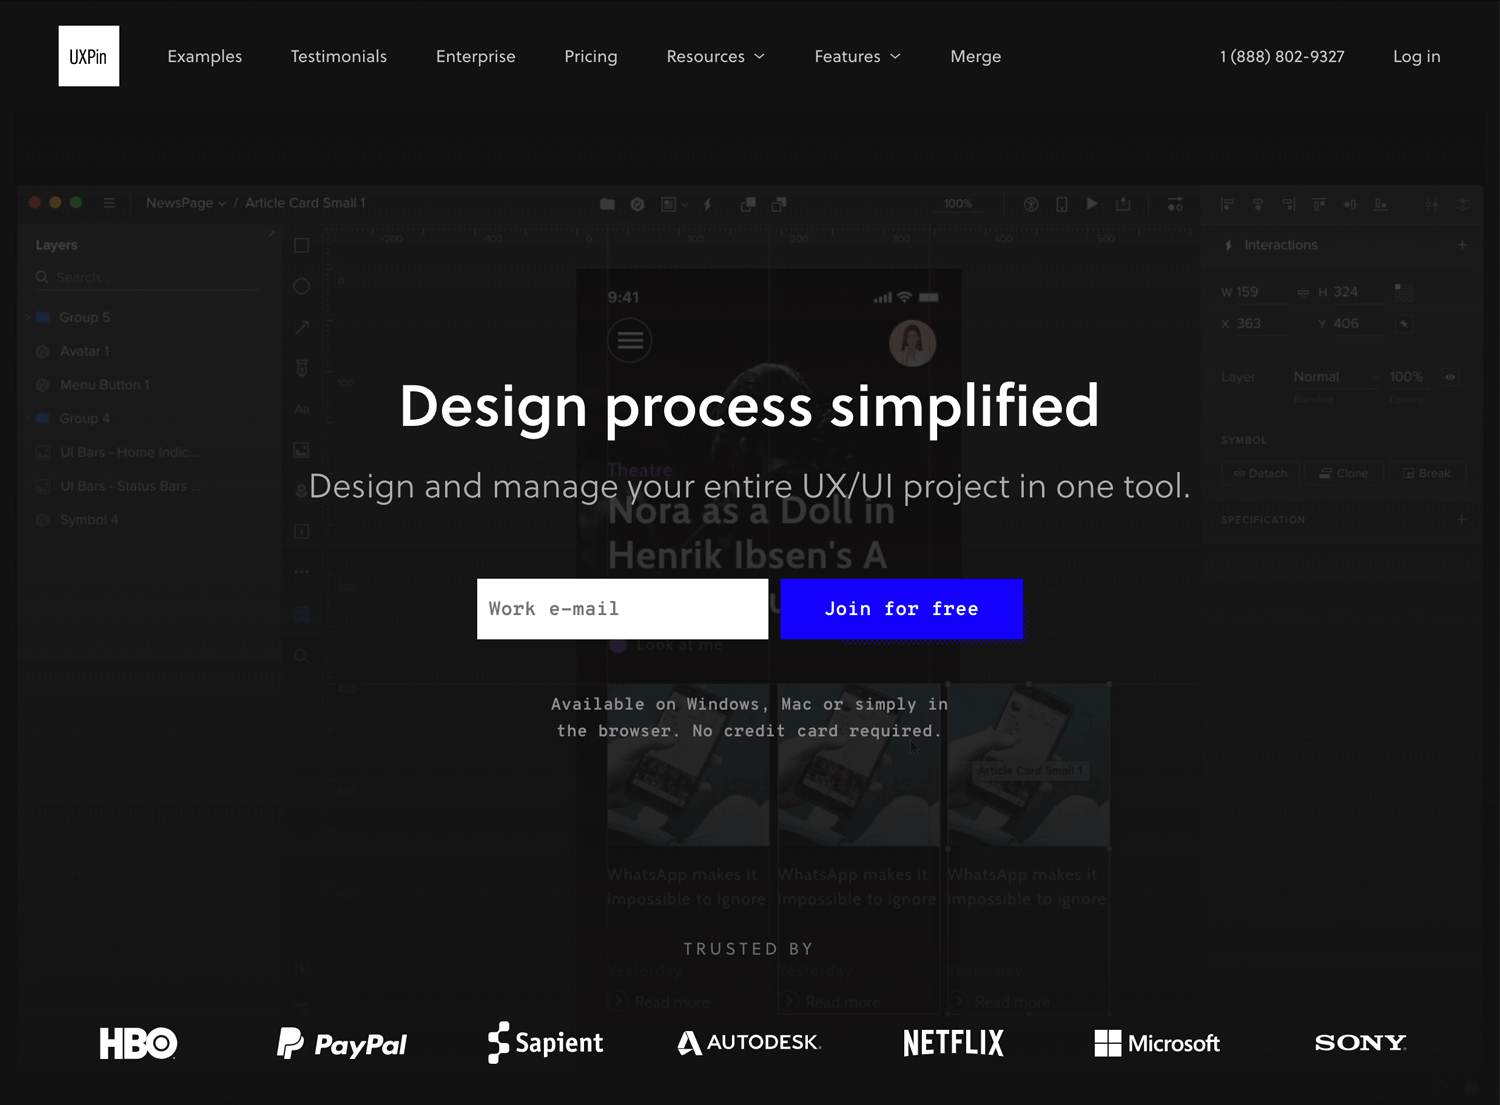 Best UI design tools - UXPin